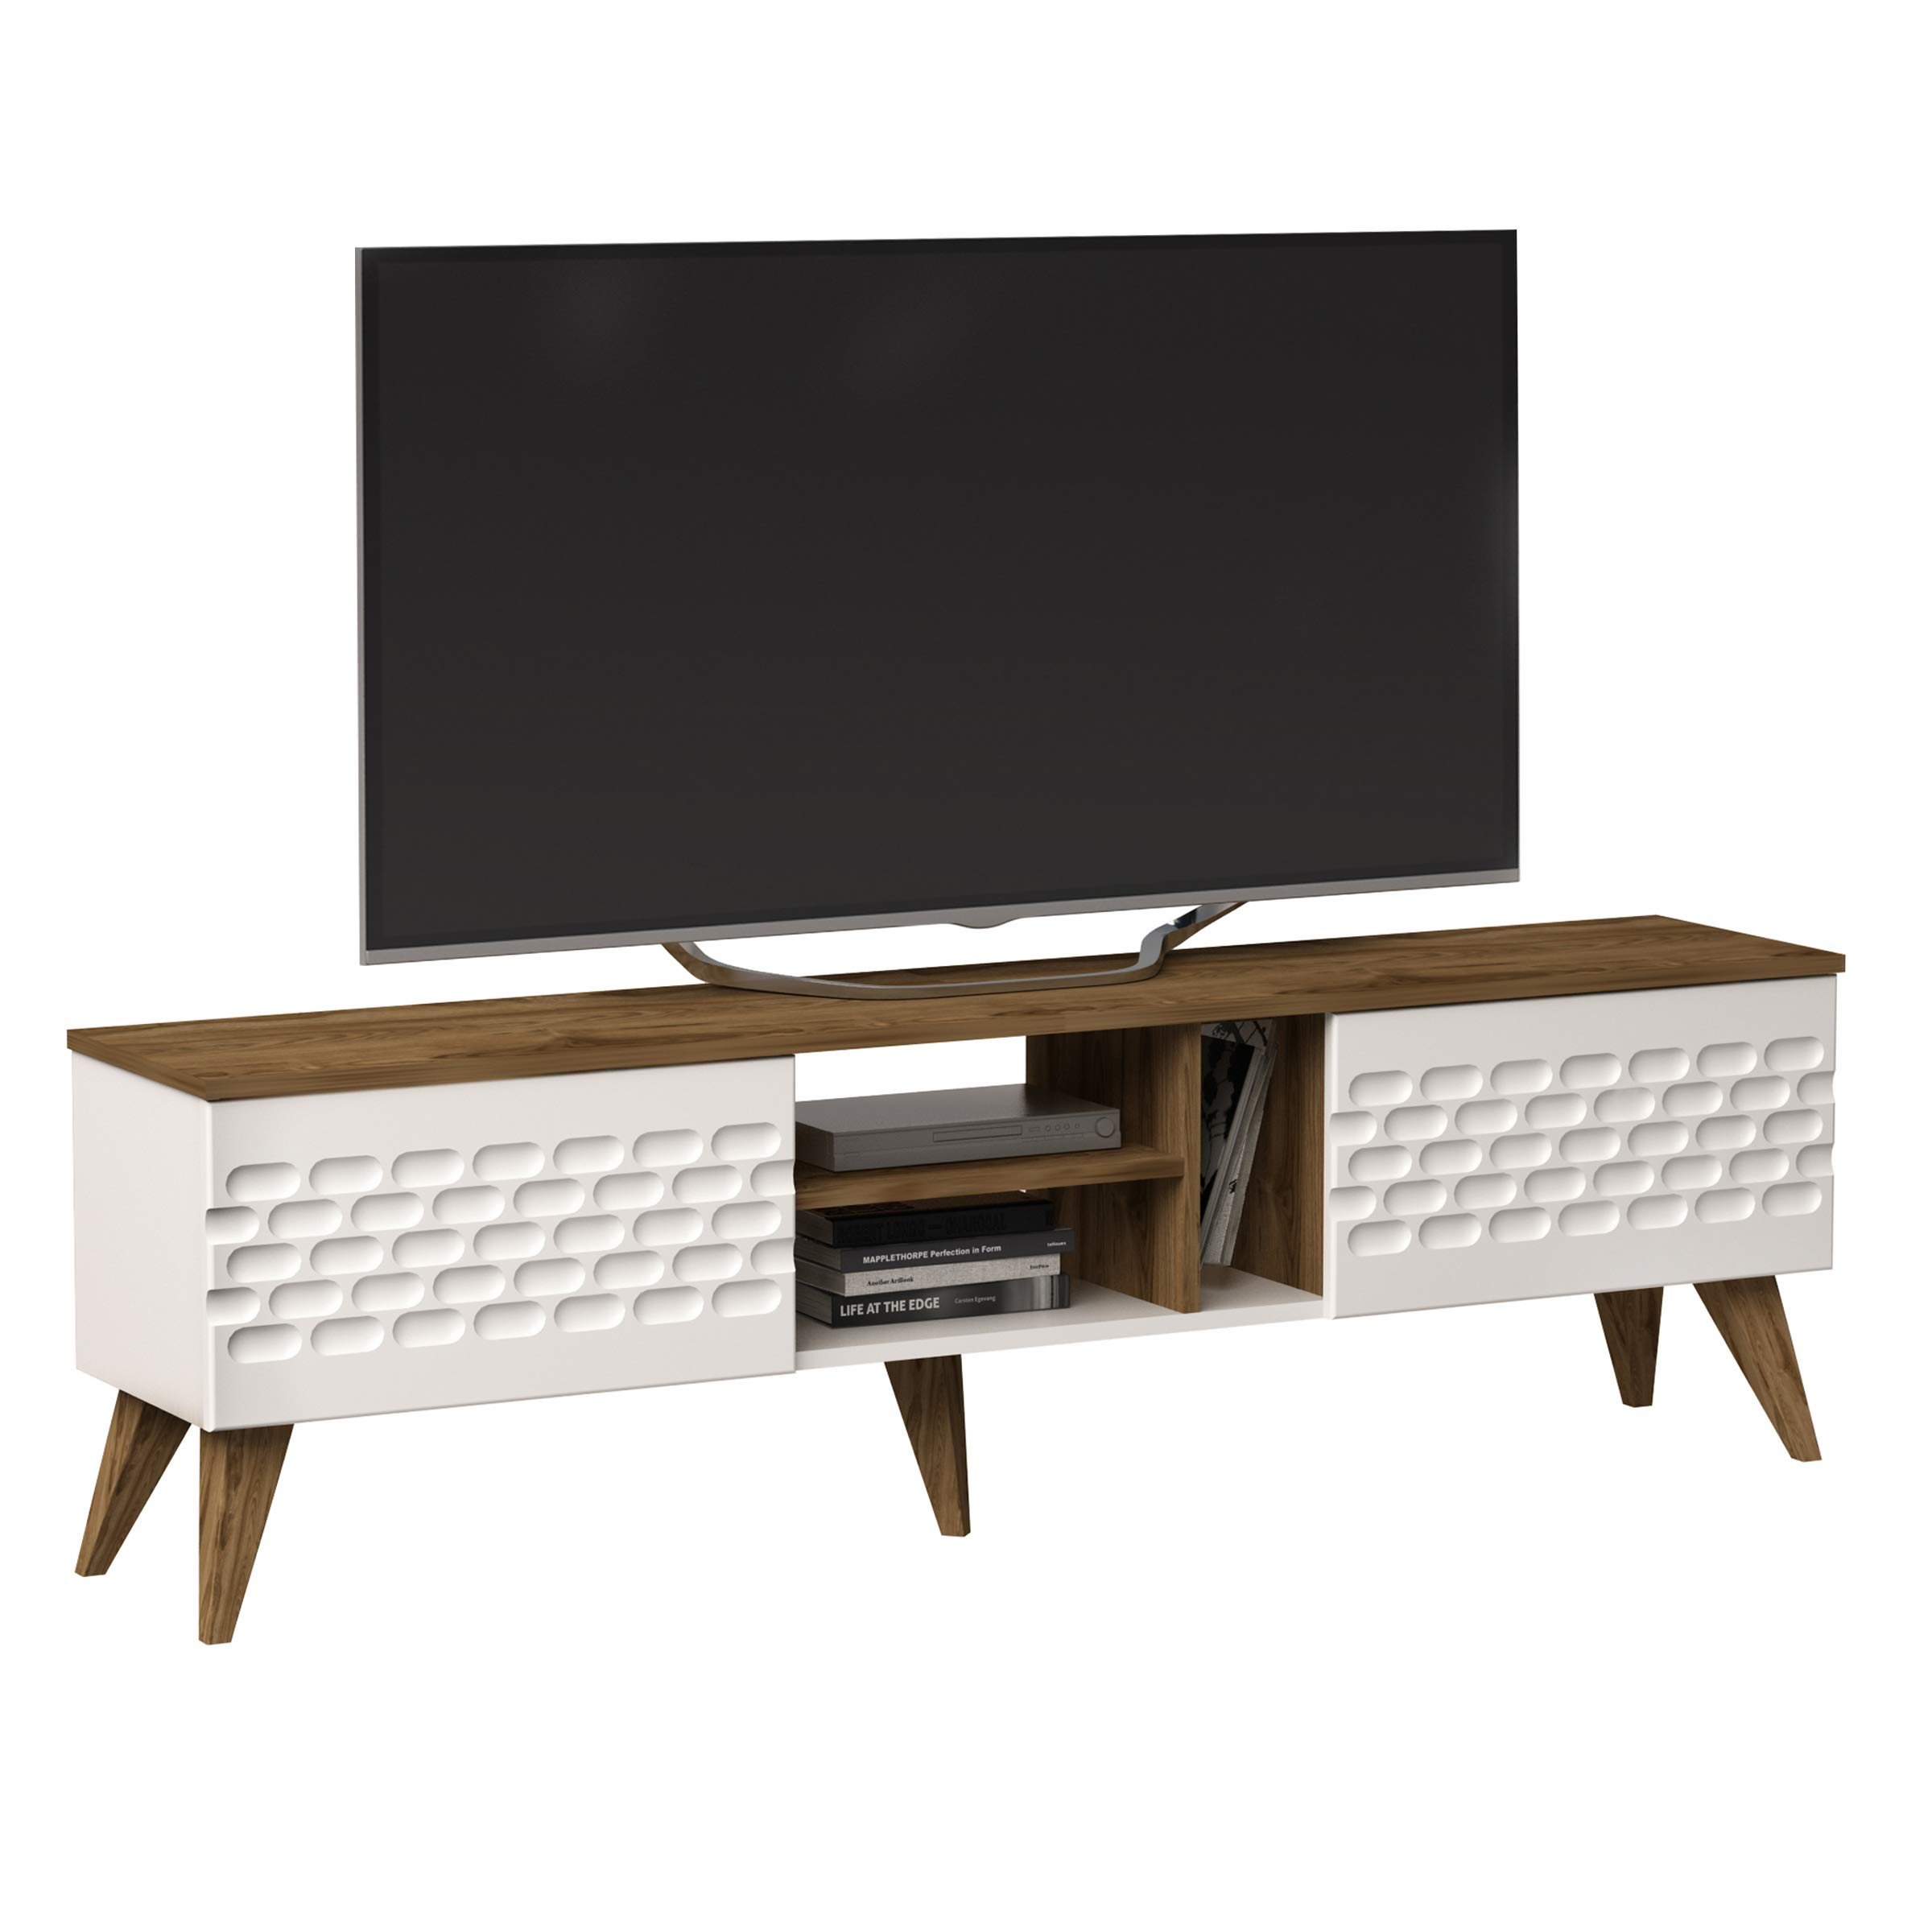 Decorotika Eggea Modern TV Stand Media Console fits up to 70'' TVs with Closed Cabinets and Open Shelves by Decorotika